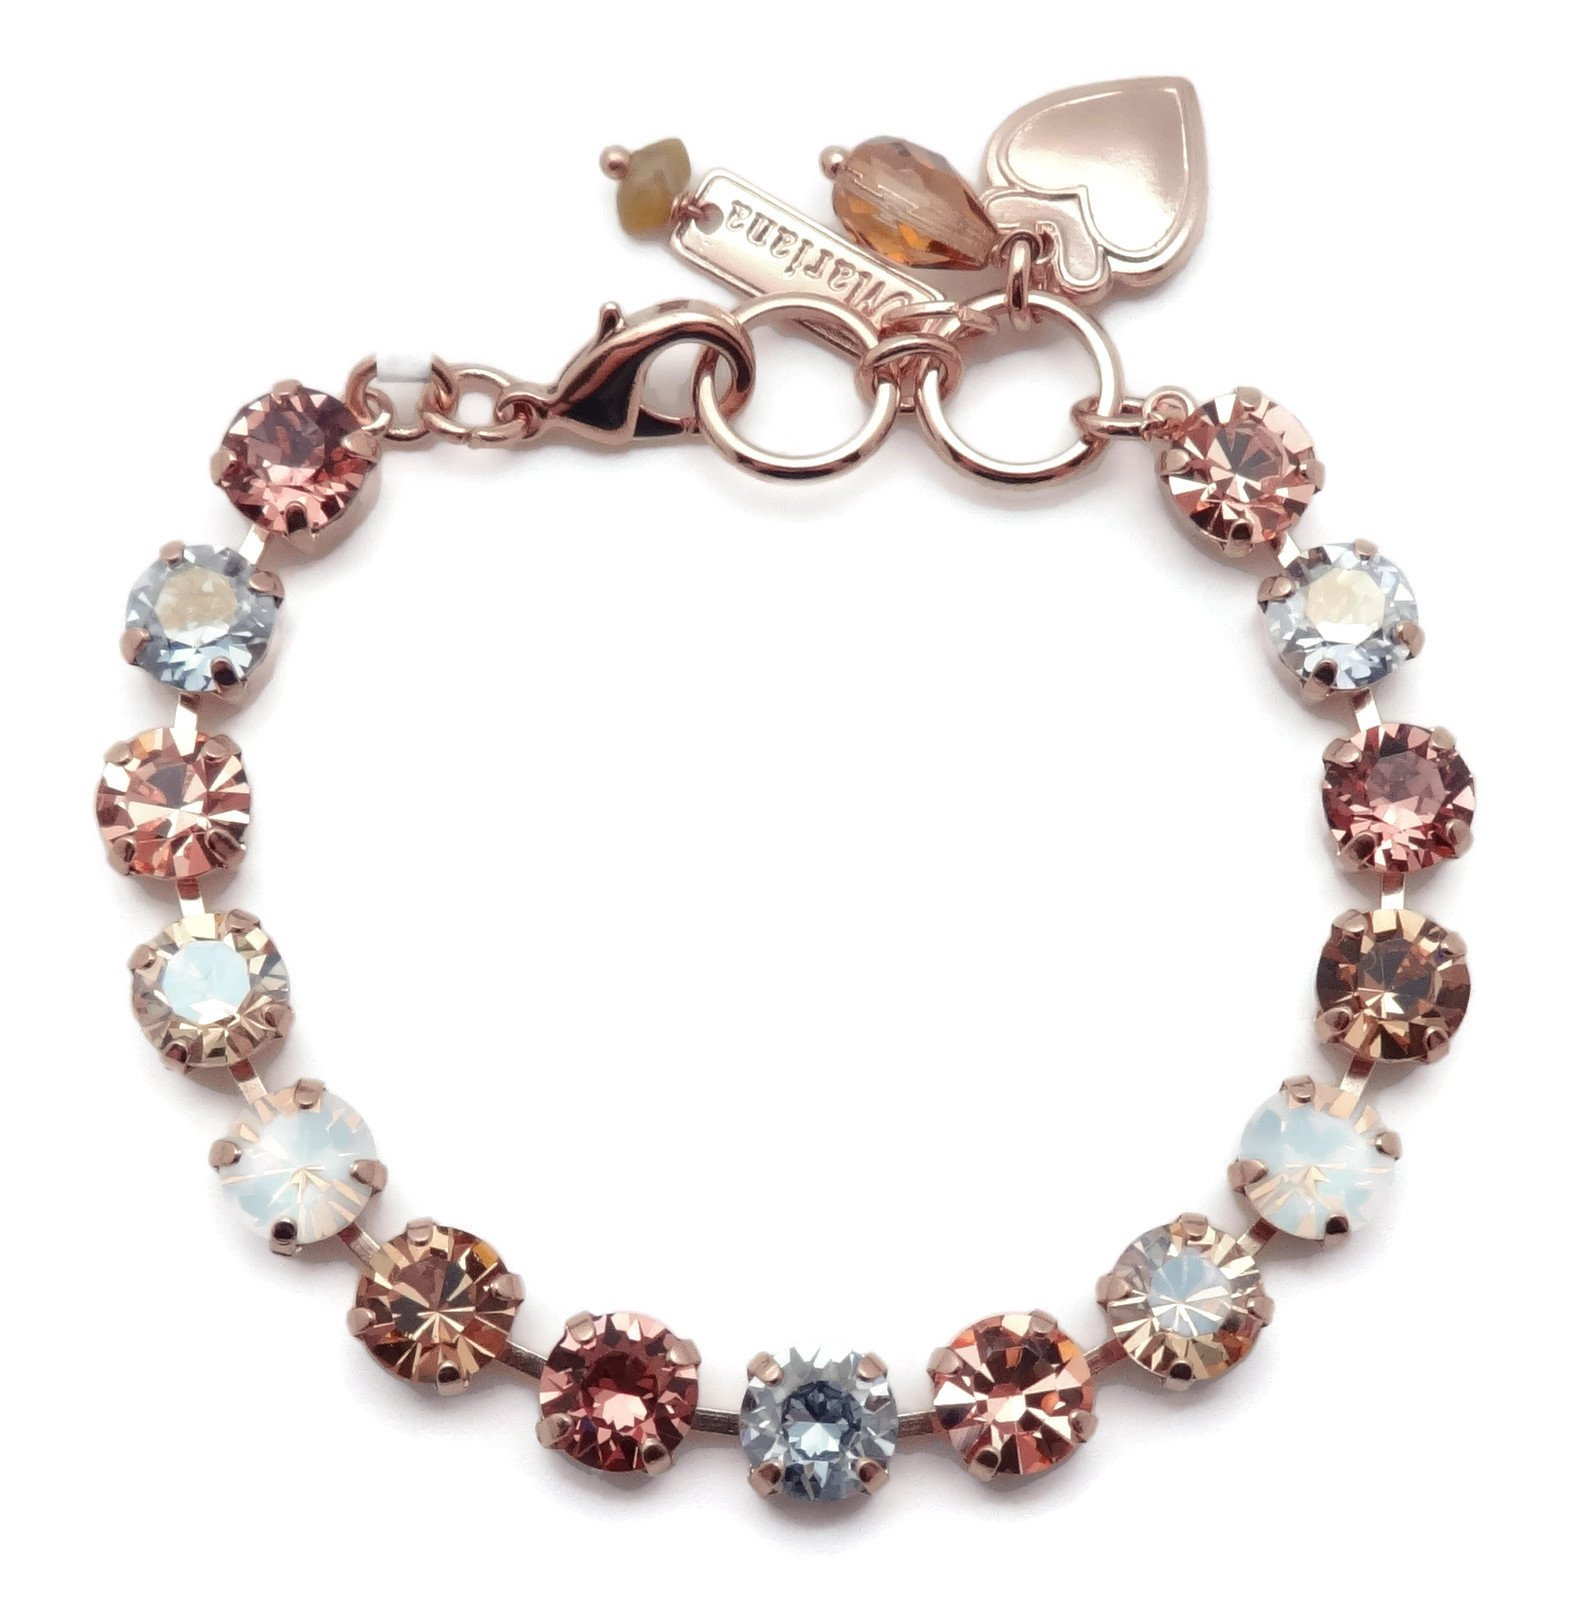 Mariana Crème Brûlée Swarovski Crystal Rose Goldtone Bracelet Brown White Rose Mix Bette 146 by Mariana